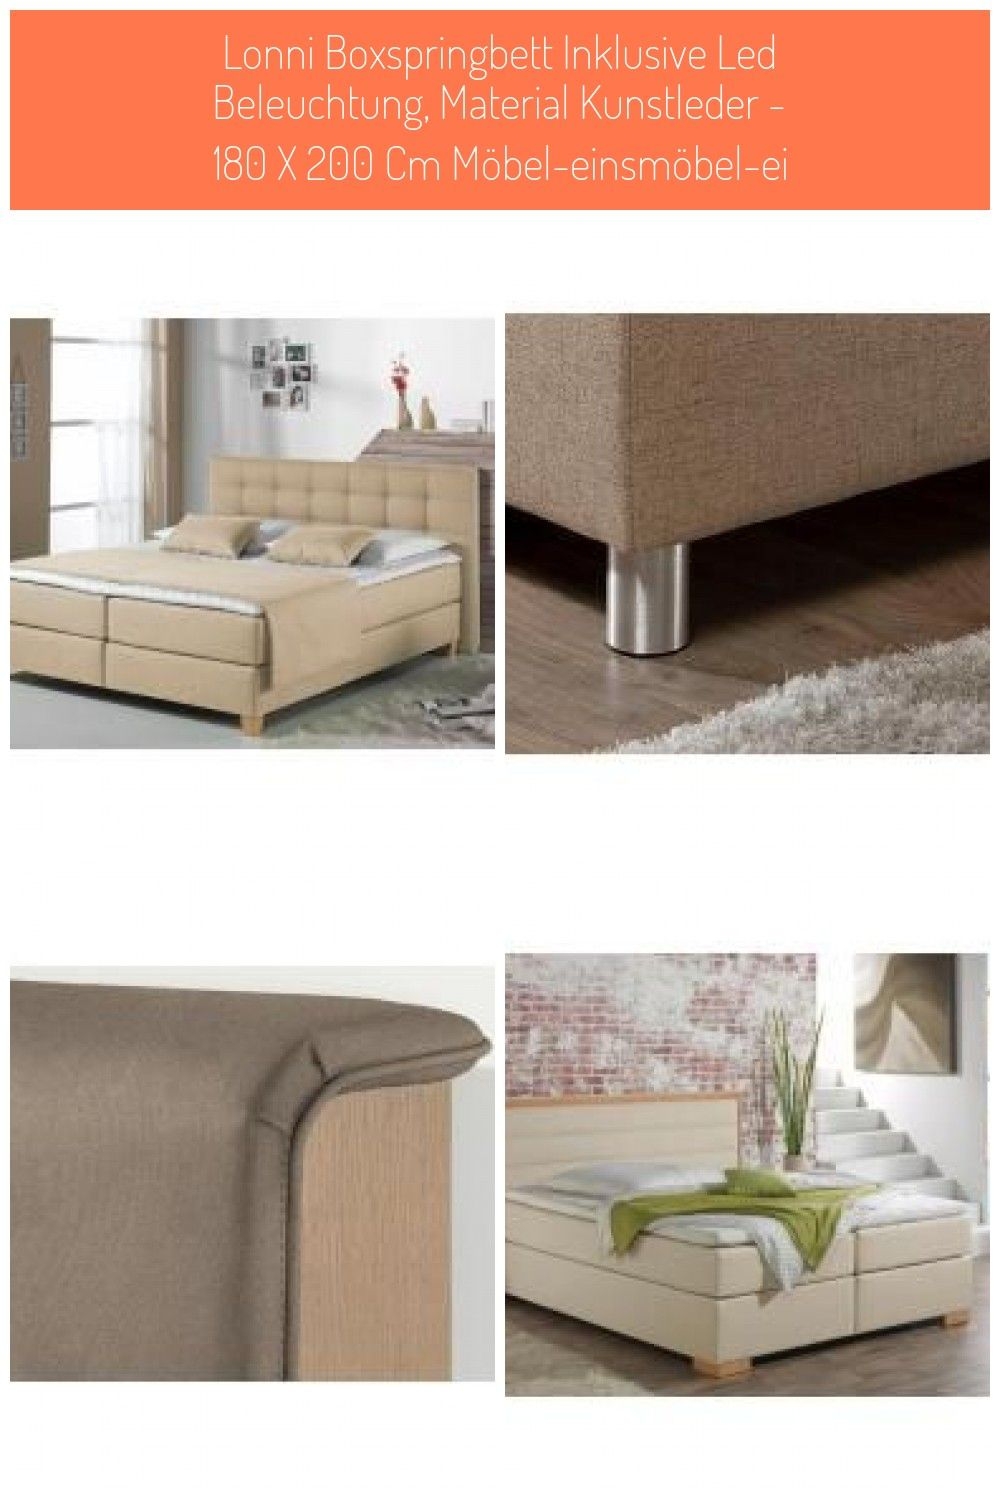 Topper Height 4cm Box Height 32cm Headboard Height 117cm Mattress Height 15cm Seat Height 61cm Foot 6cm Length 208cm Height 117cm Length Bed Surface 200cm Width In 2020